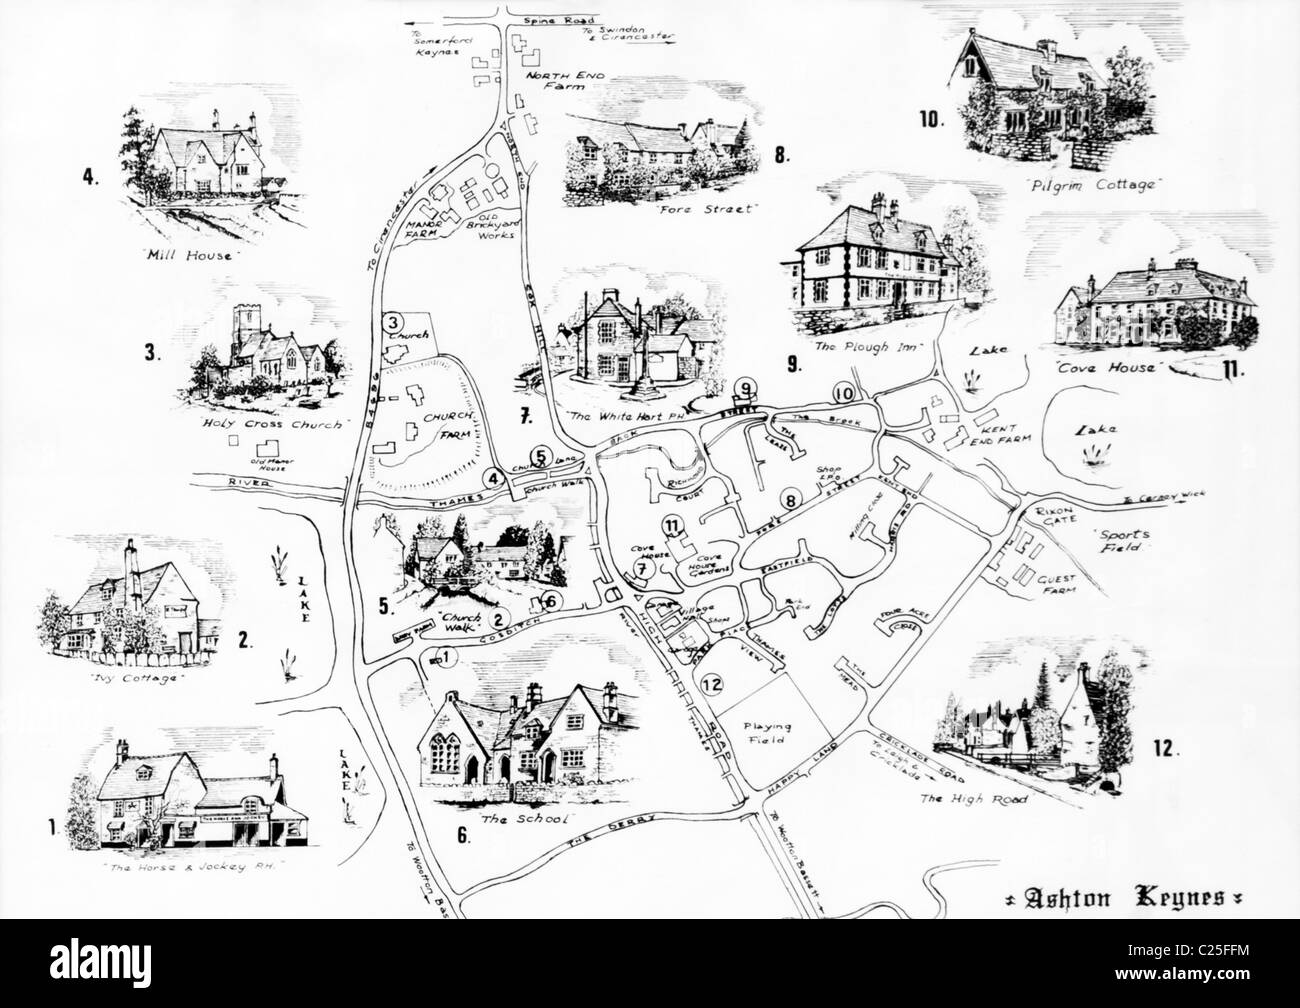 1989 map of the village of Ashton Keynes in the Cotswolds, Gloucestershire, UK - Stock Image